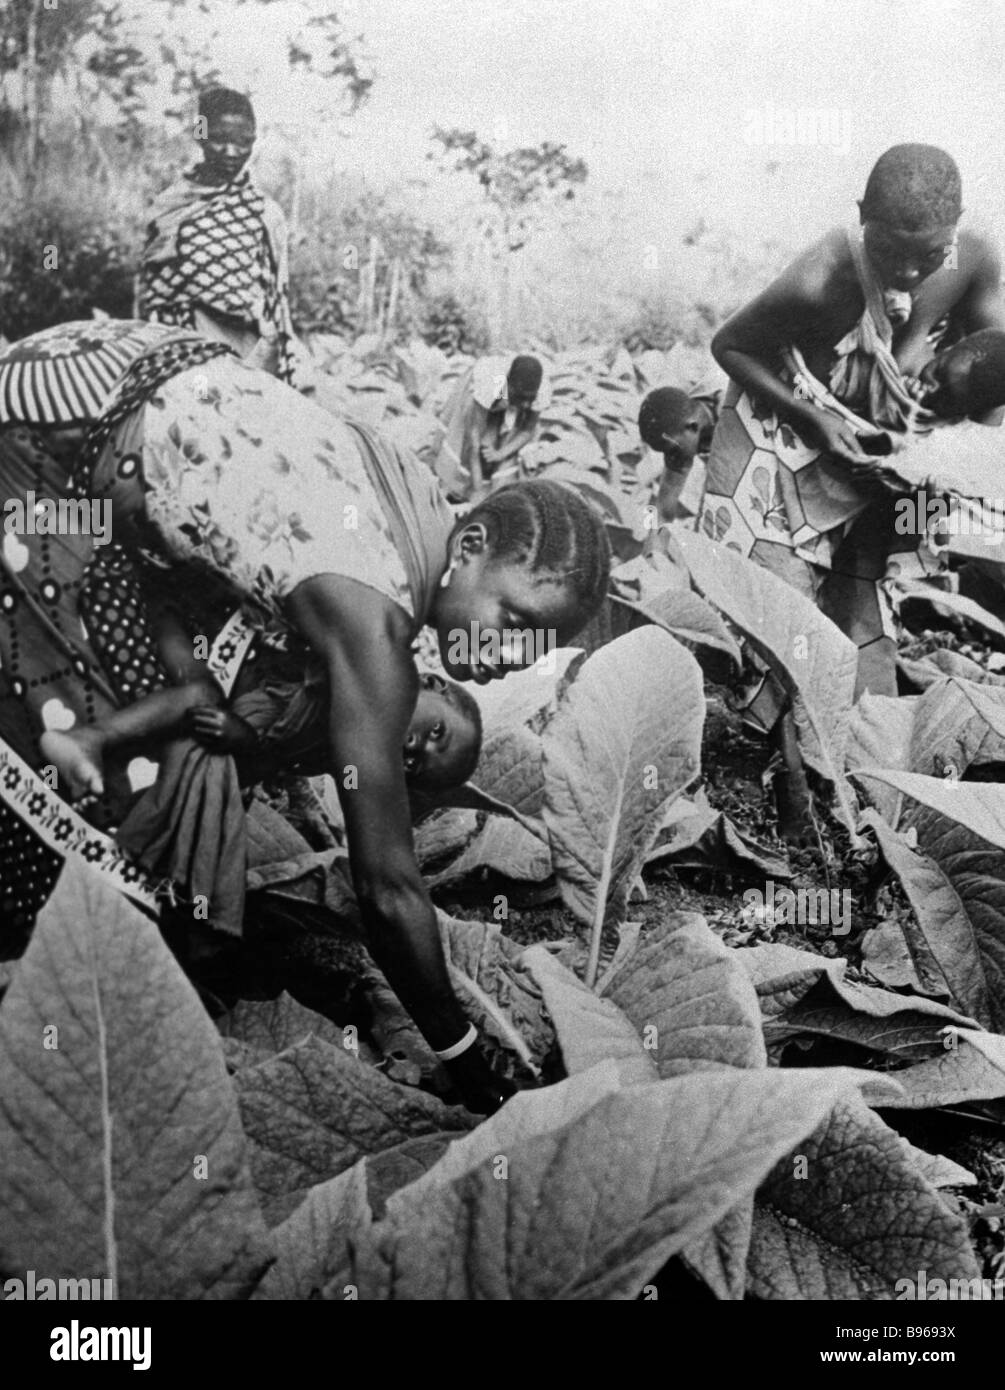 Women picking tobacco leaves on the plantation - Stock Image